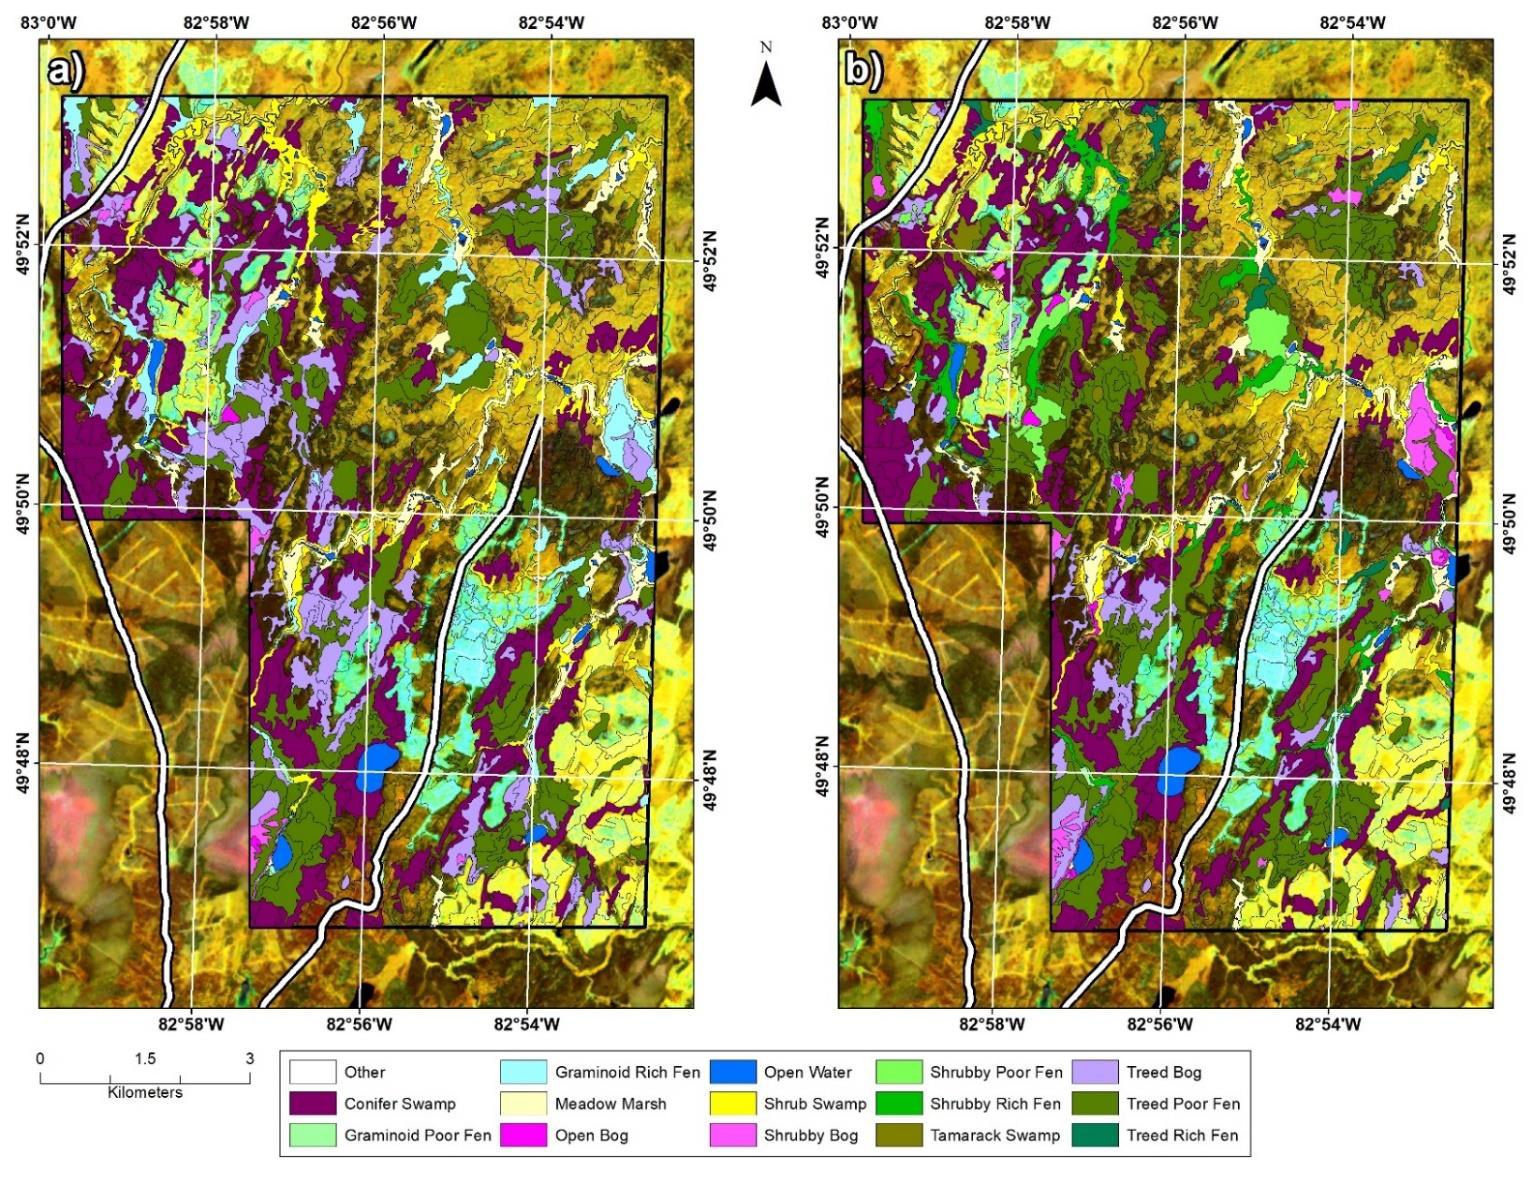 wetland mapping comparison